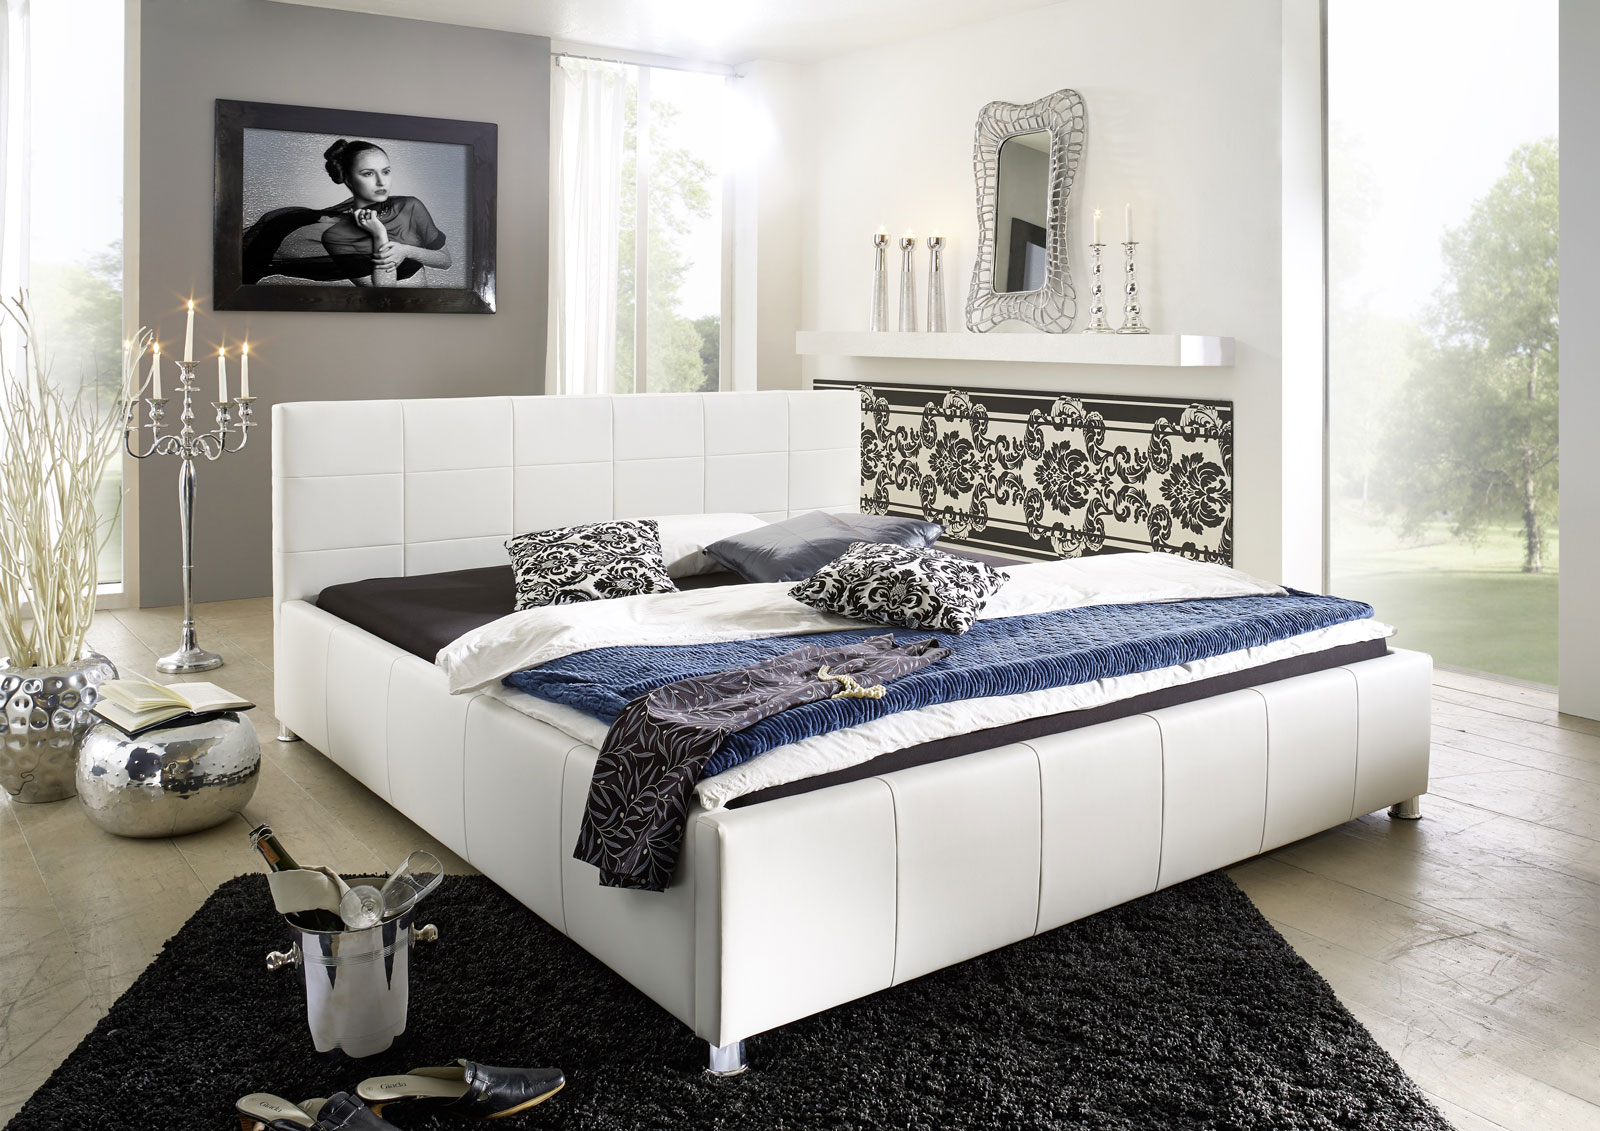 sam polster bett 100 x 200 cm wei kira auf lager. Black Bedroom Furniture Sets. Home Design Ideas